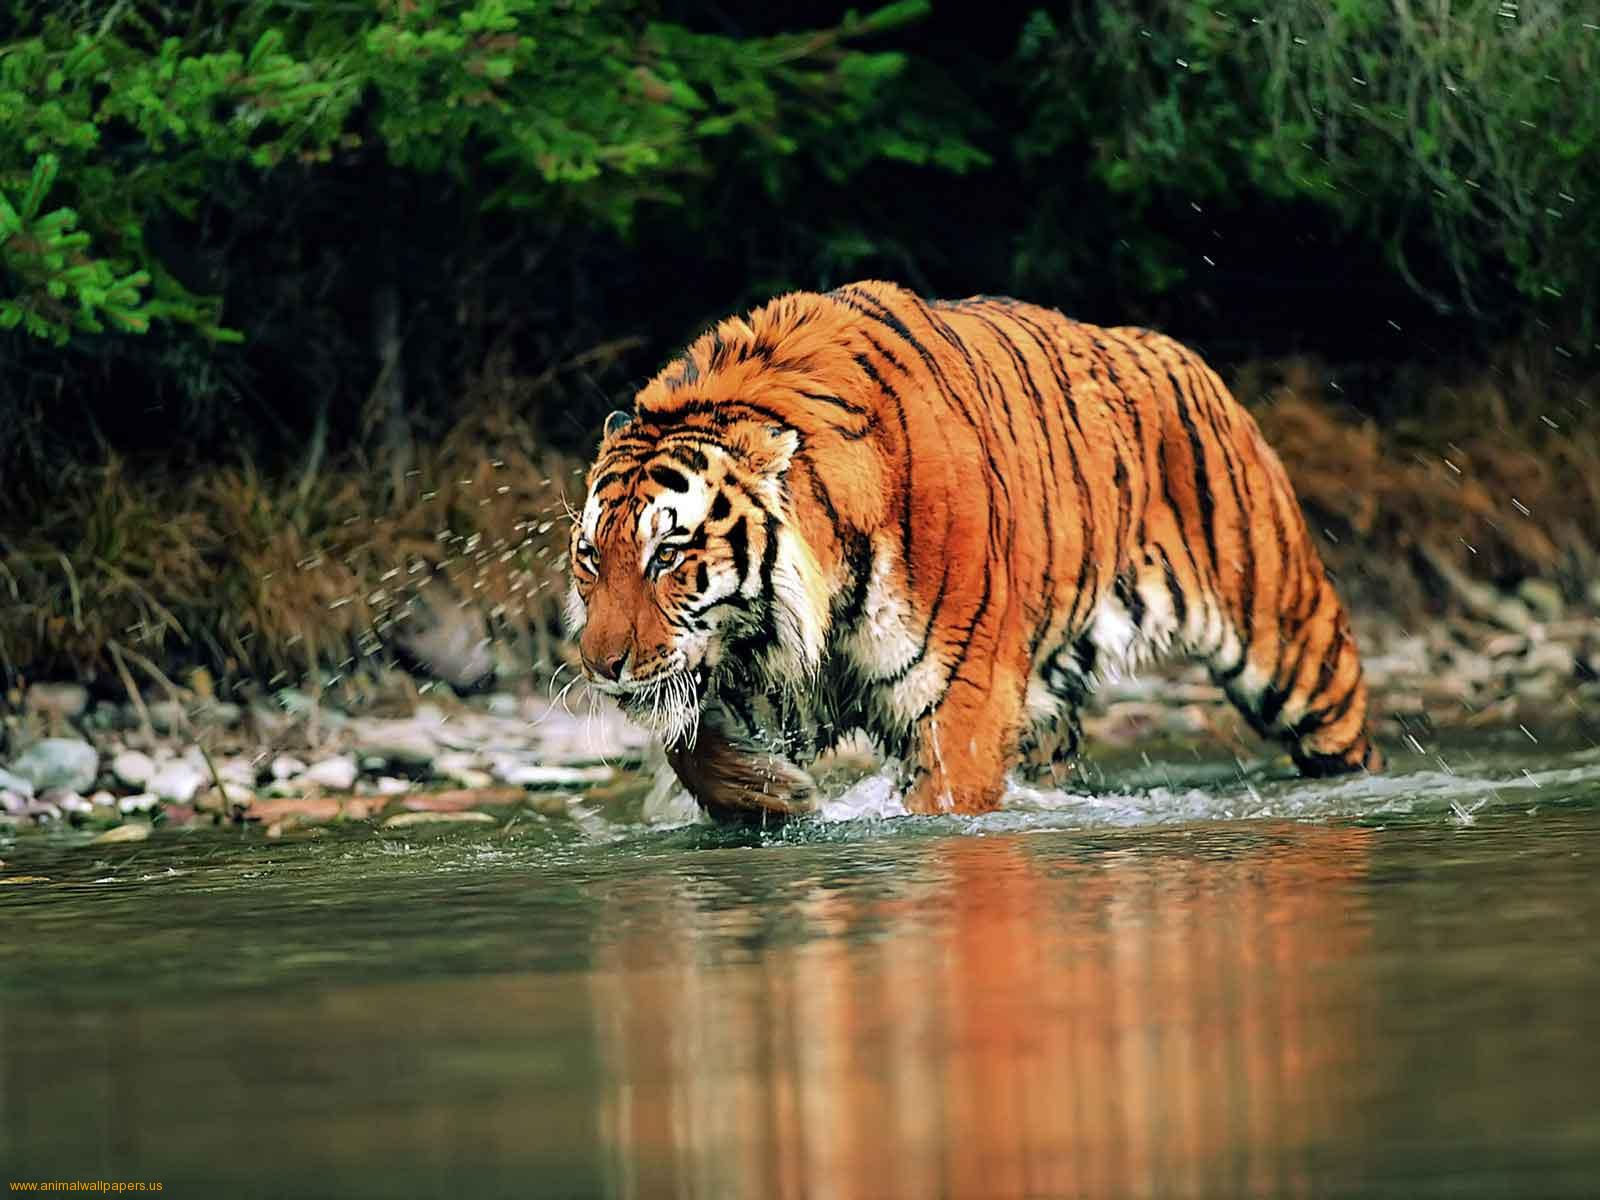 Wallpaper Bengal Tiger Hd Animals 10217: Bengal Tigers Latest Hd WAllpapers 2013